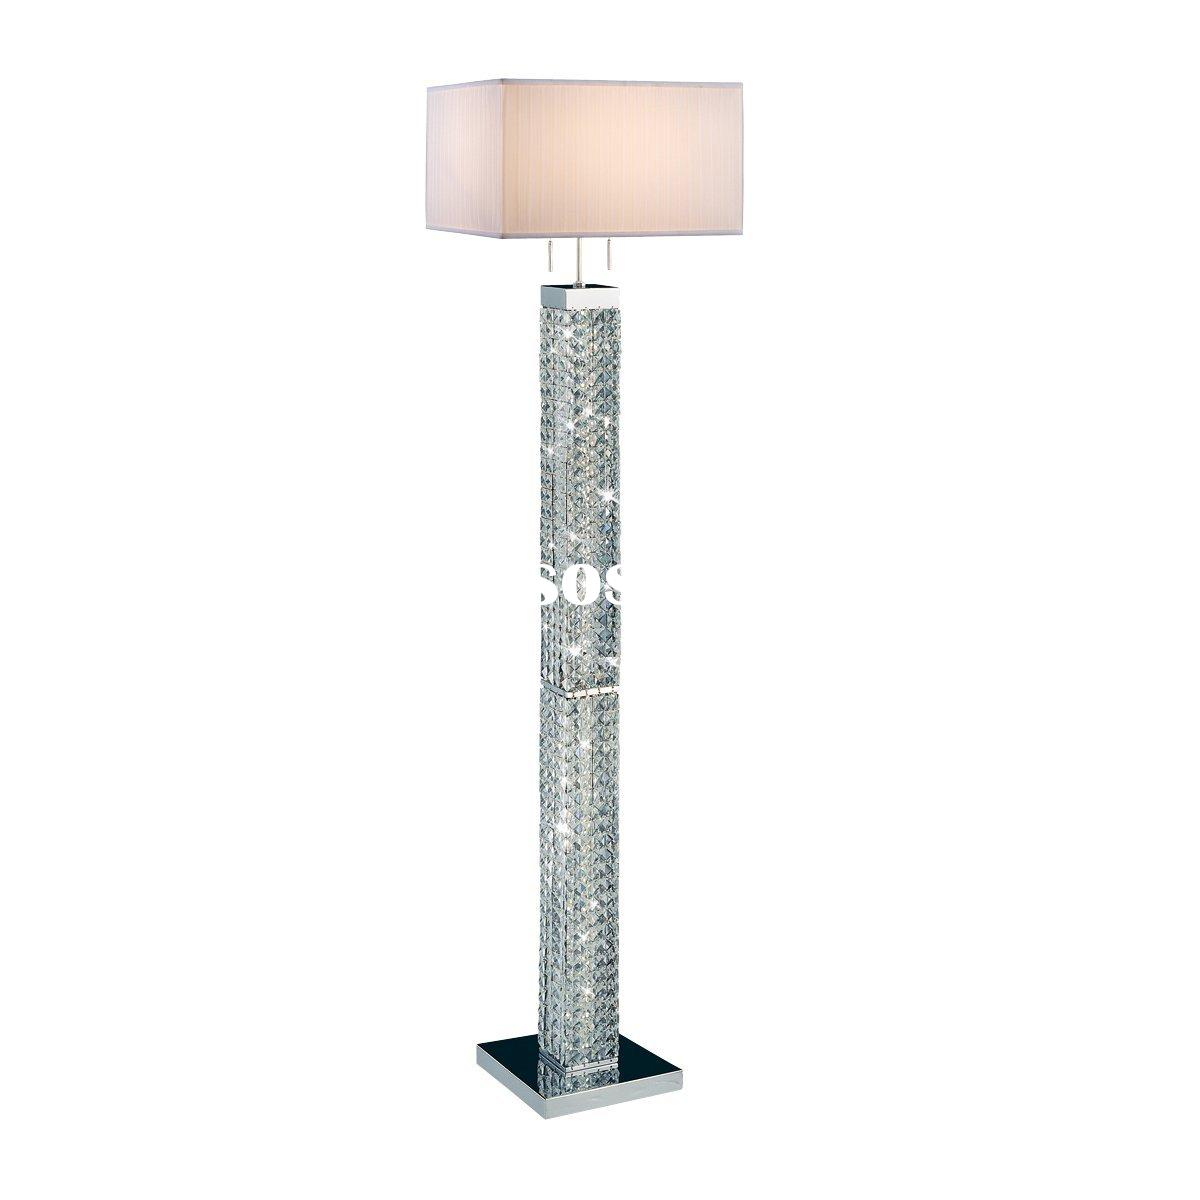 Let Floor lamp crystal Illuminate your Home and Personal